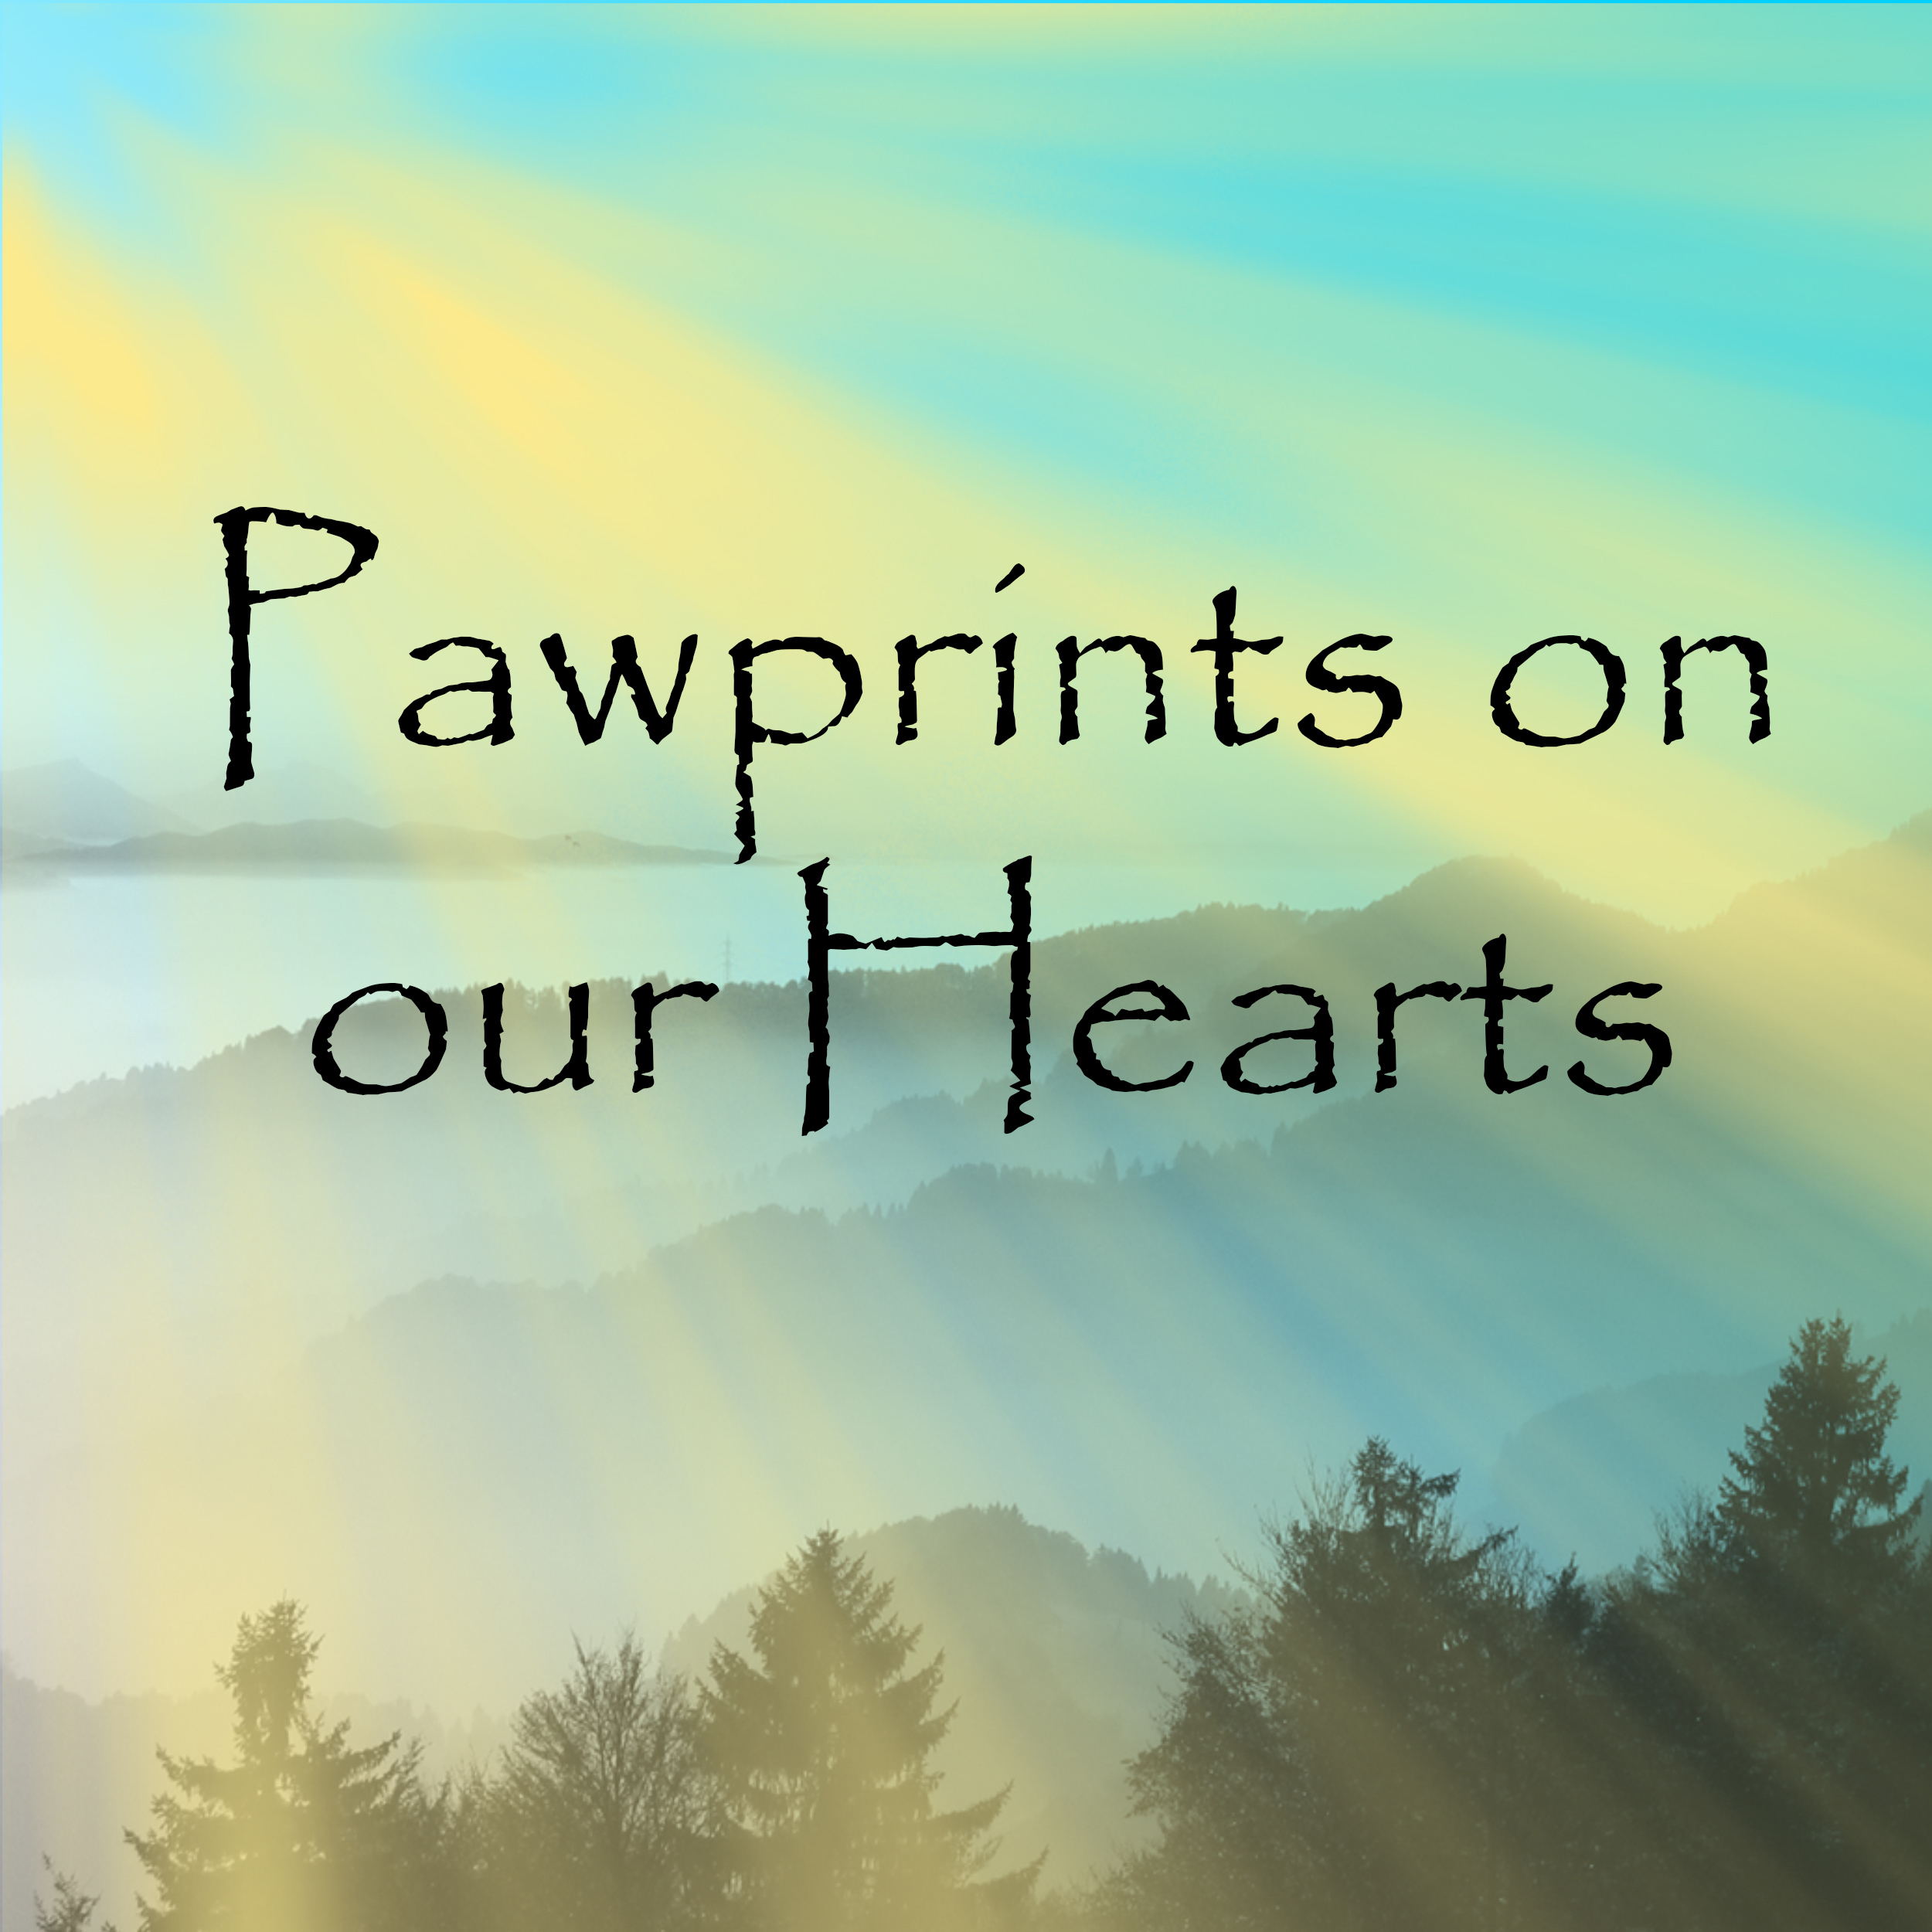 Pawprints on our Hearts Rescue